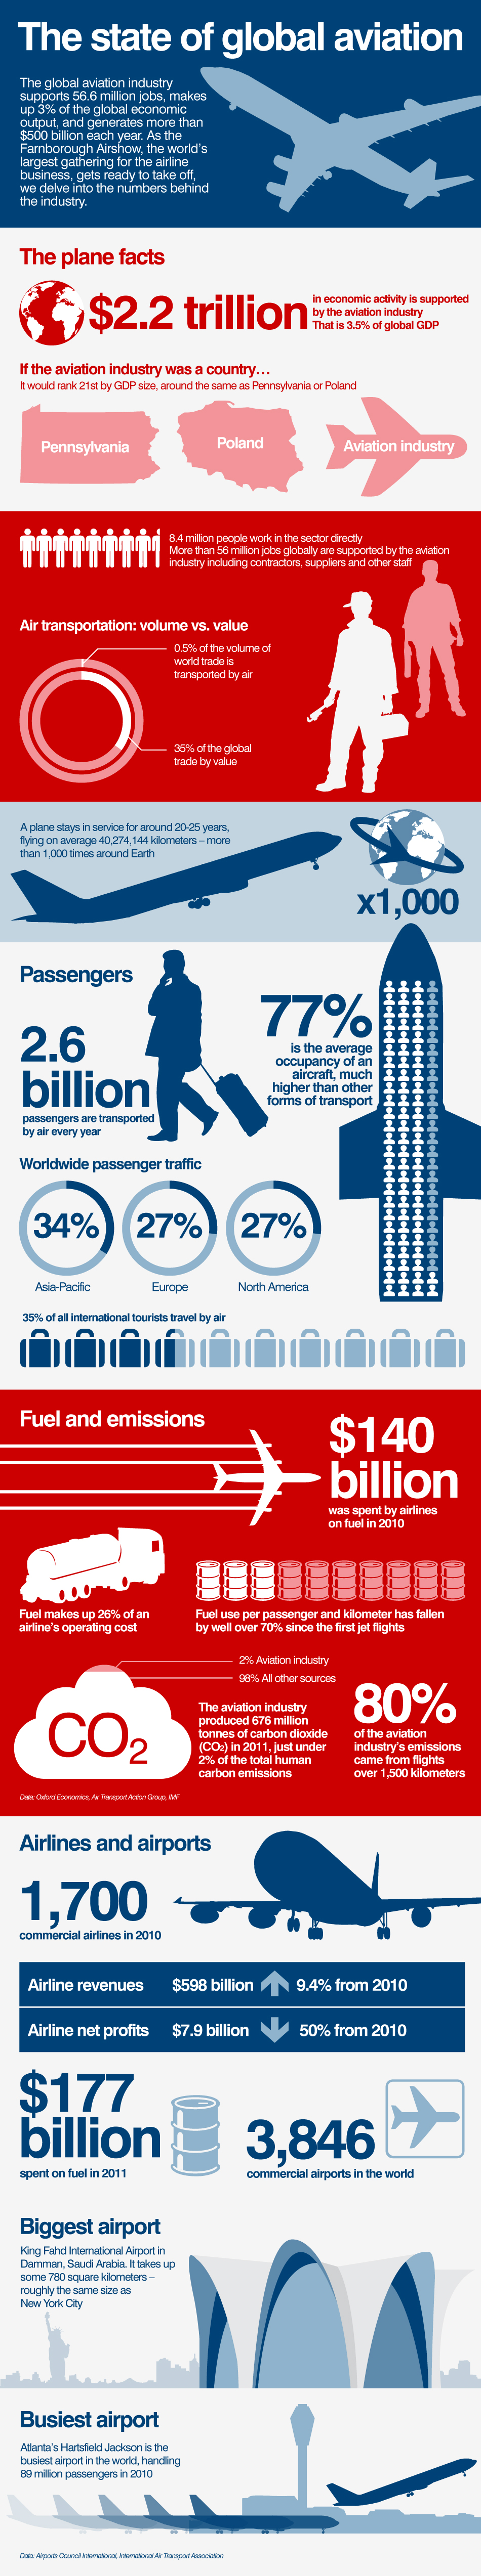 The state of global aviation - CNN com